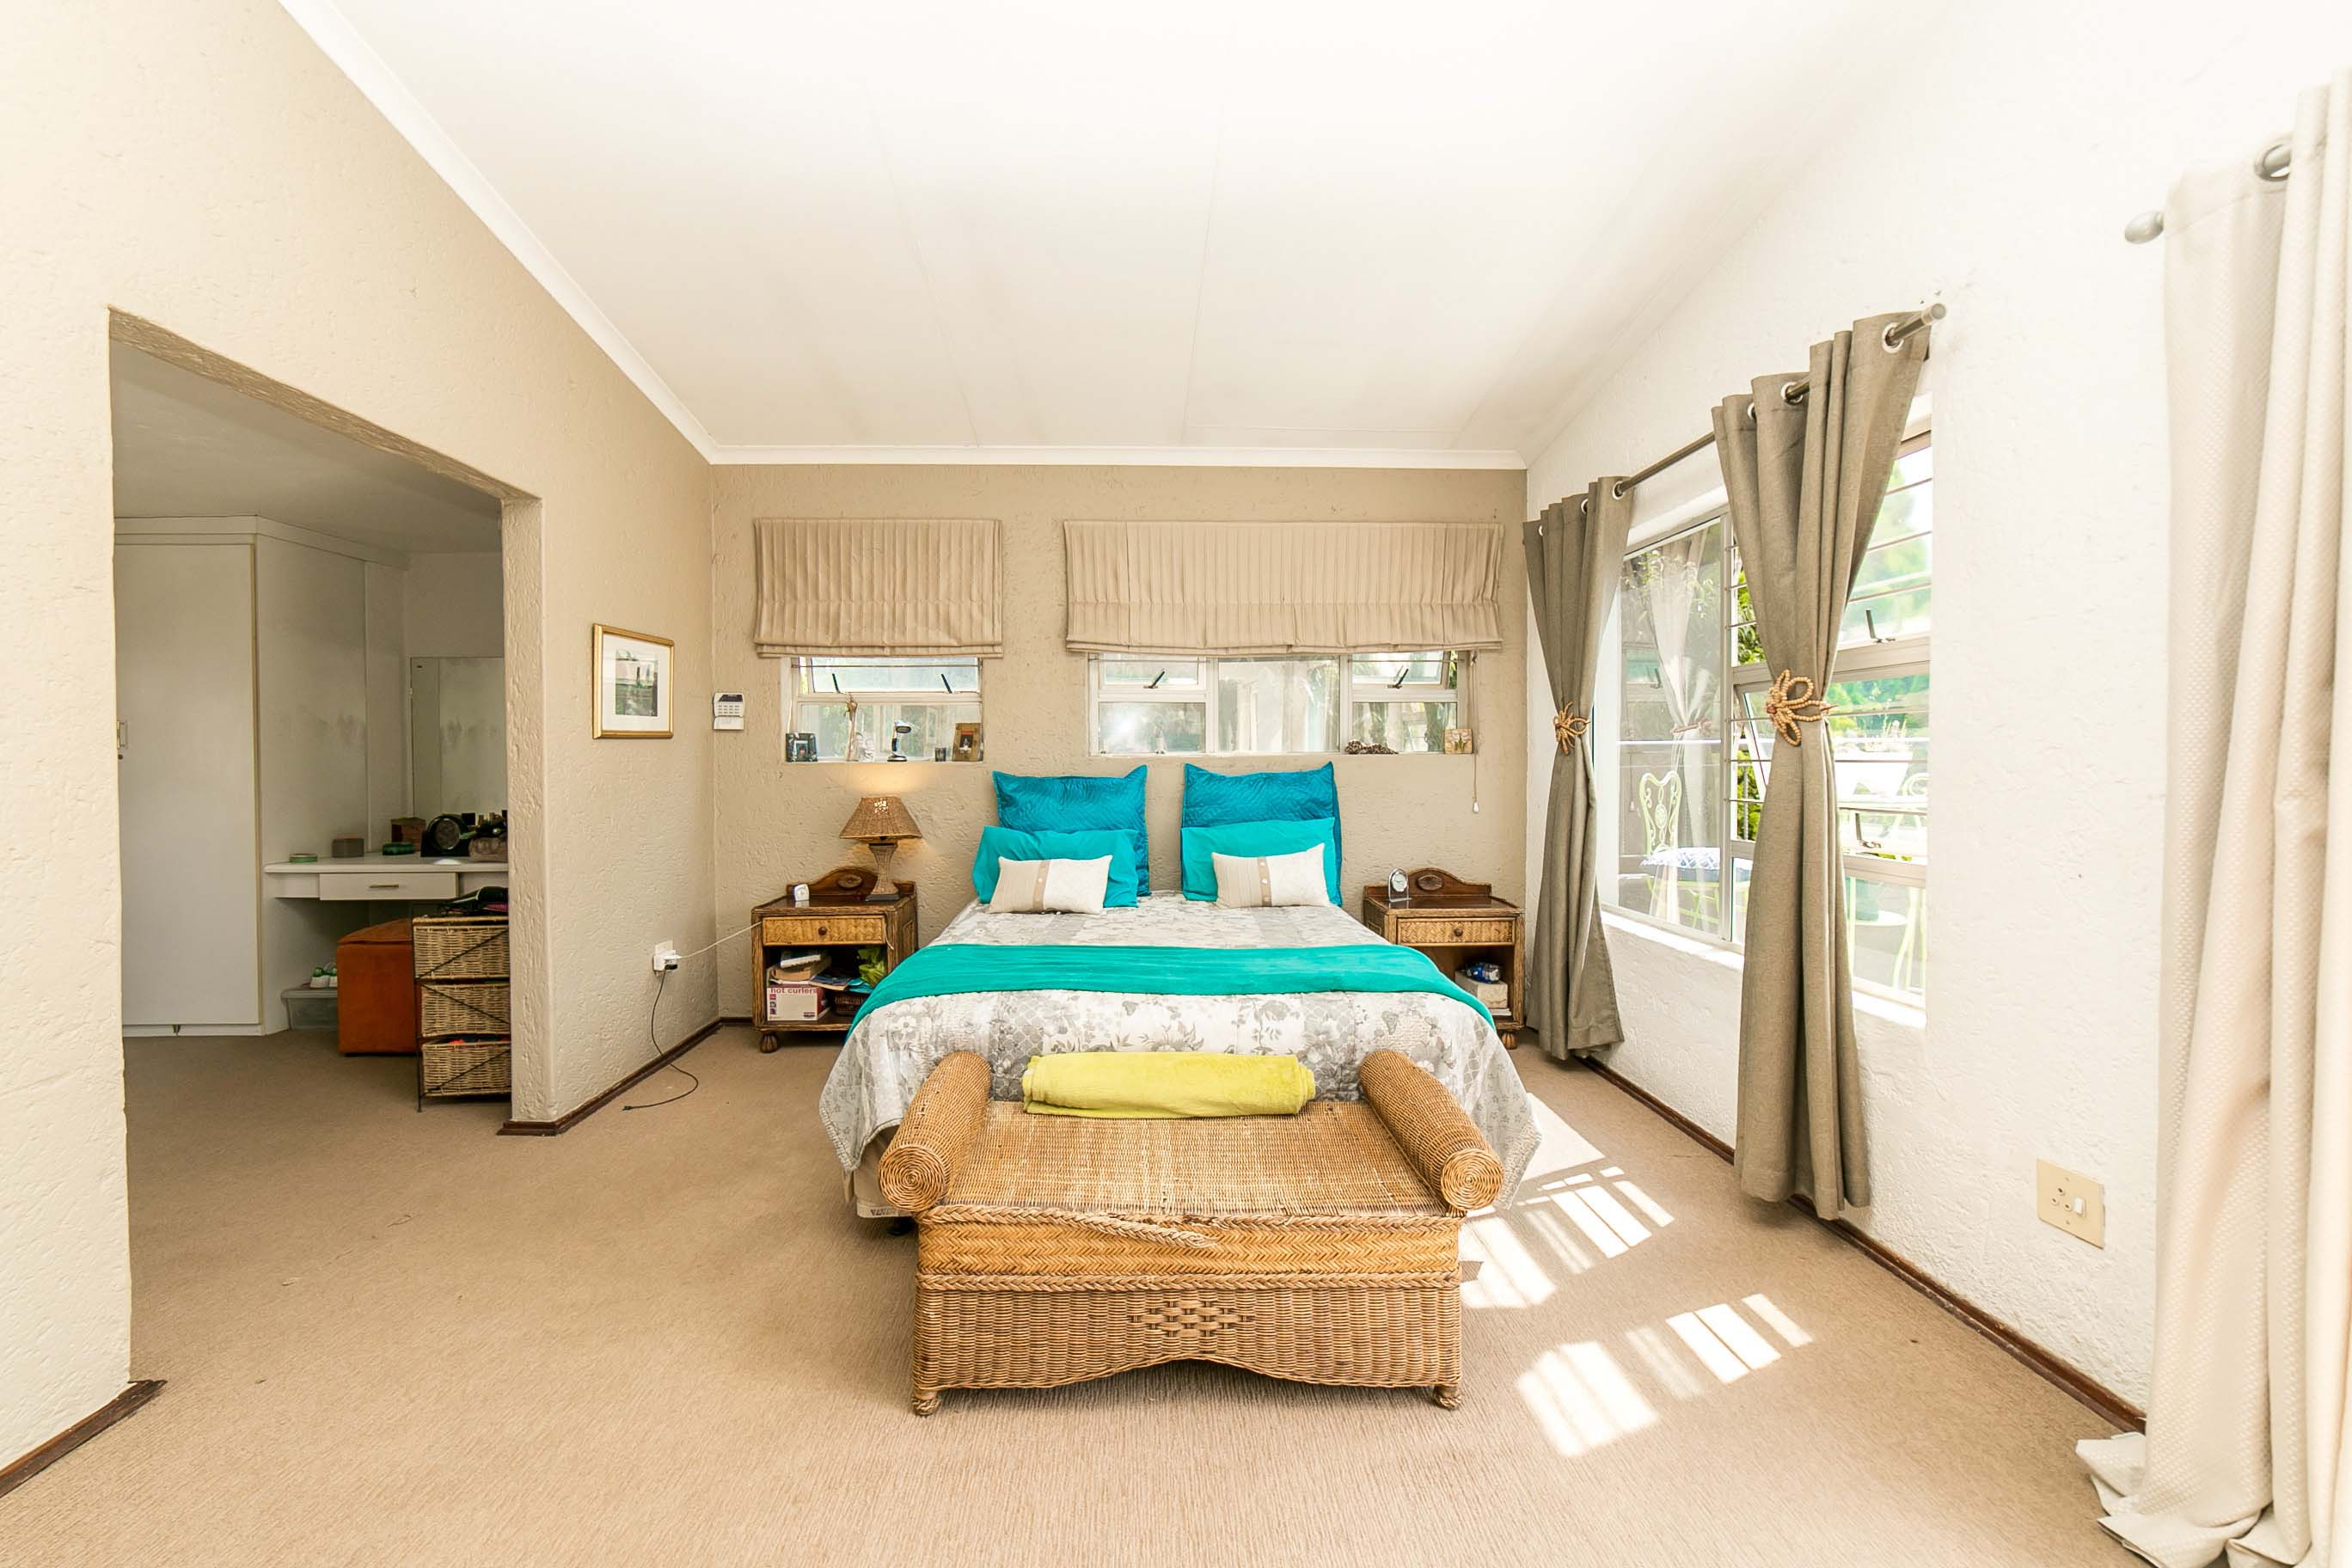 4 Bedroom House for sale in Lonehill ENT0082001 : photo#15